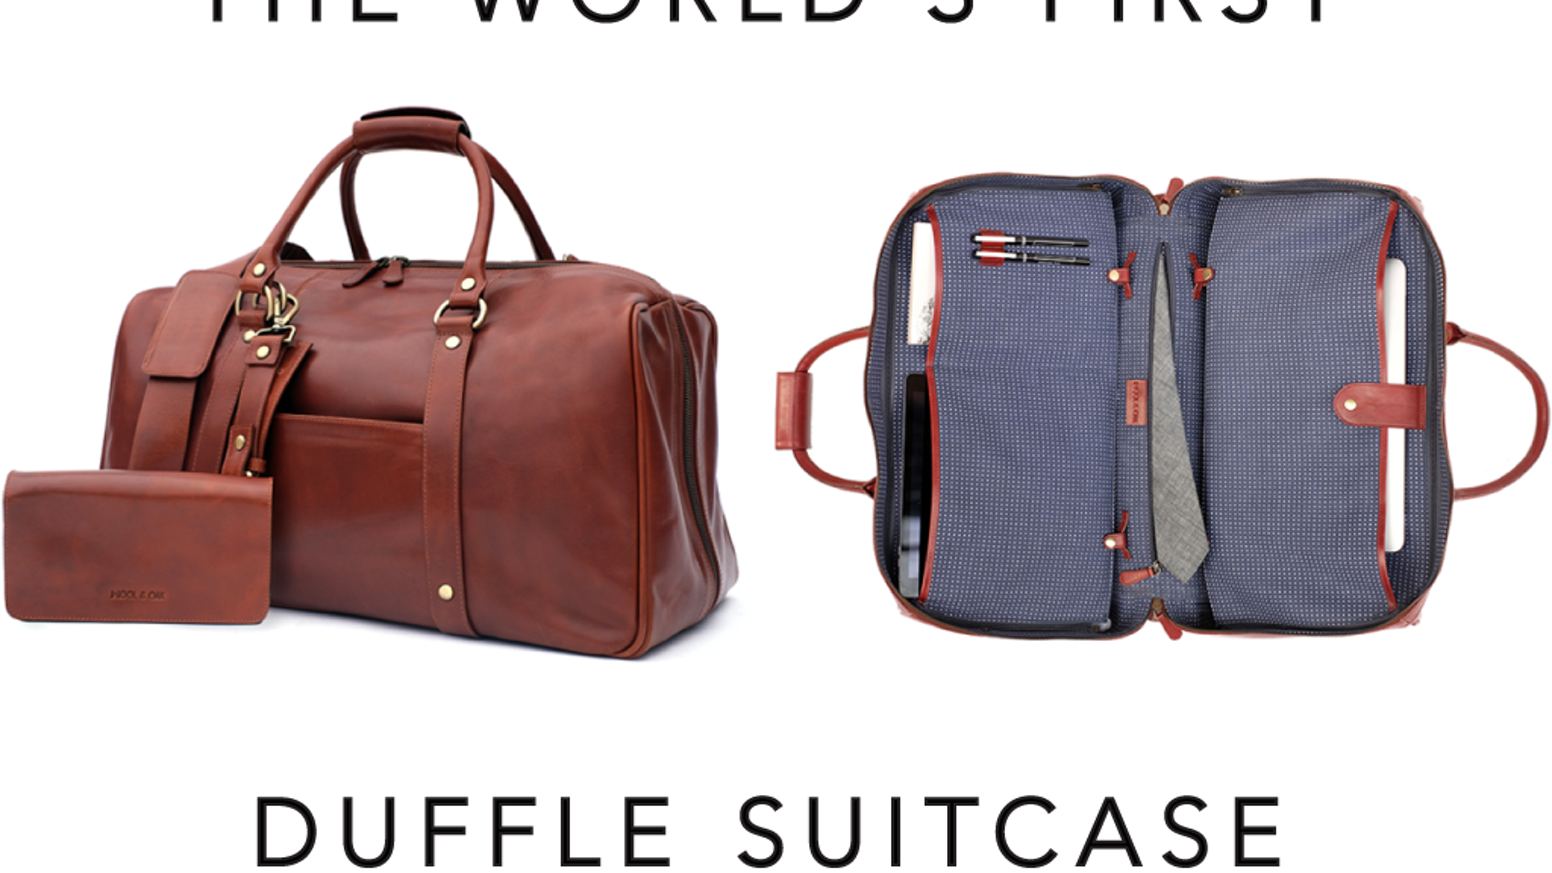 The World S First Duffle Suitcase Premium Bag 19 Features By Wool Oak Kickstarter